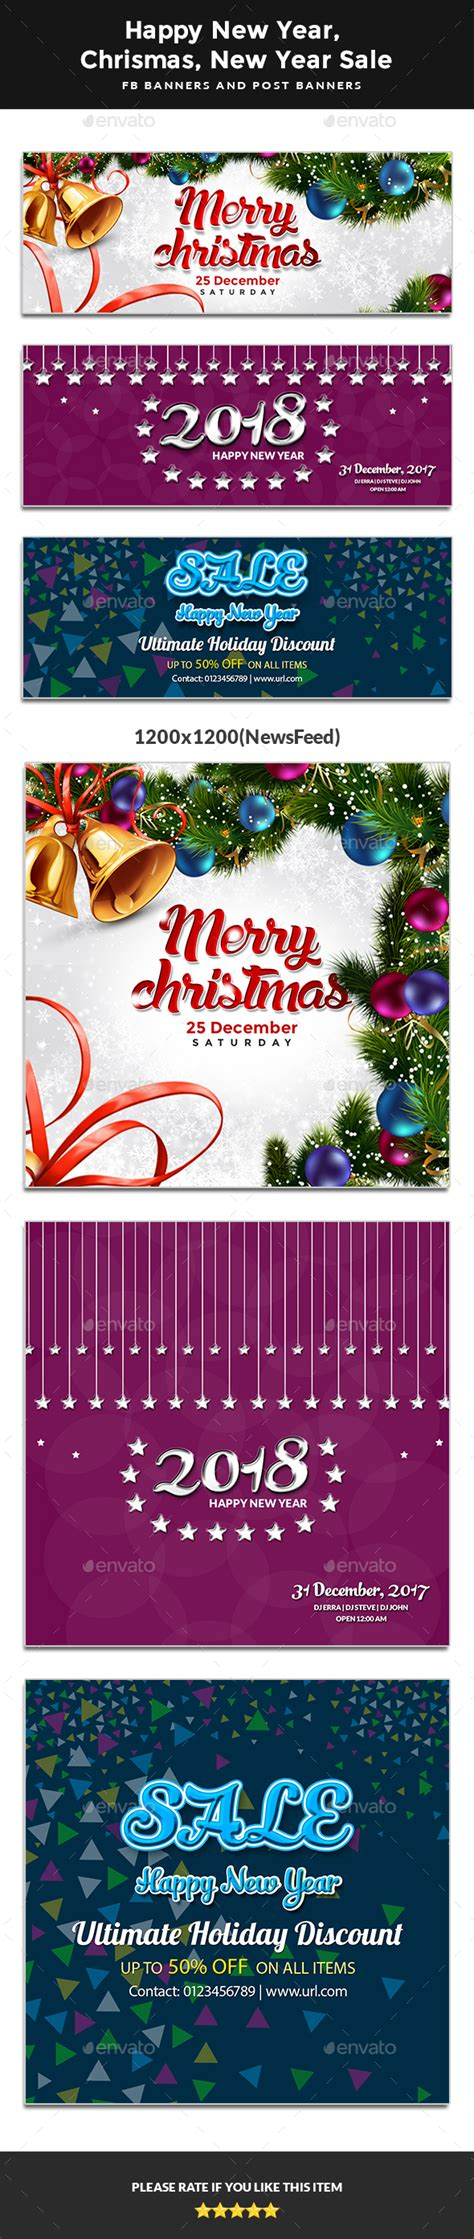 5 new year sale covers 187 tinkytyler org stock photos graphics